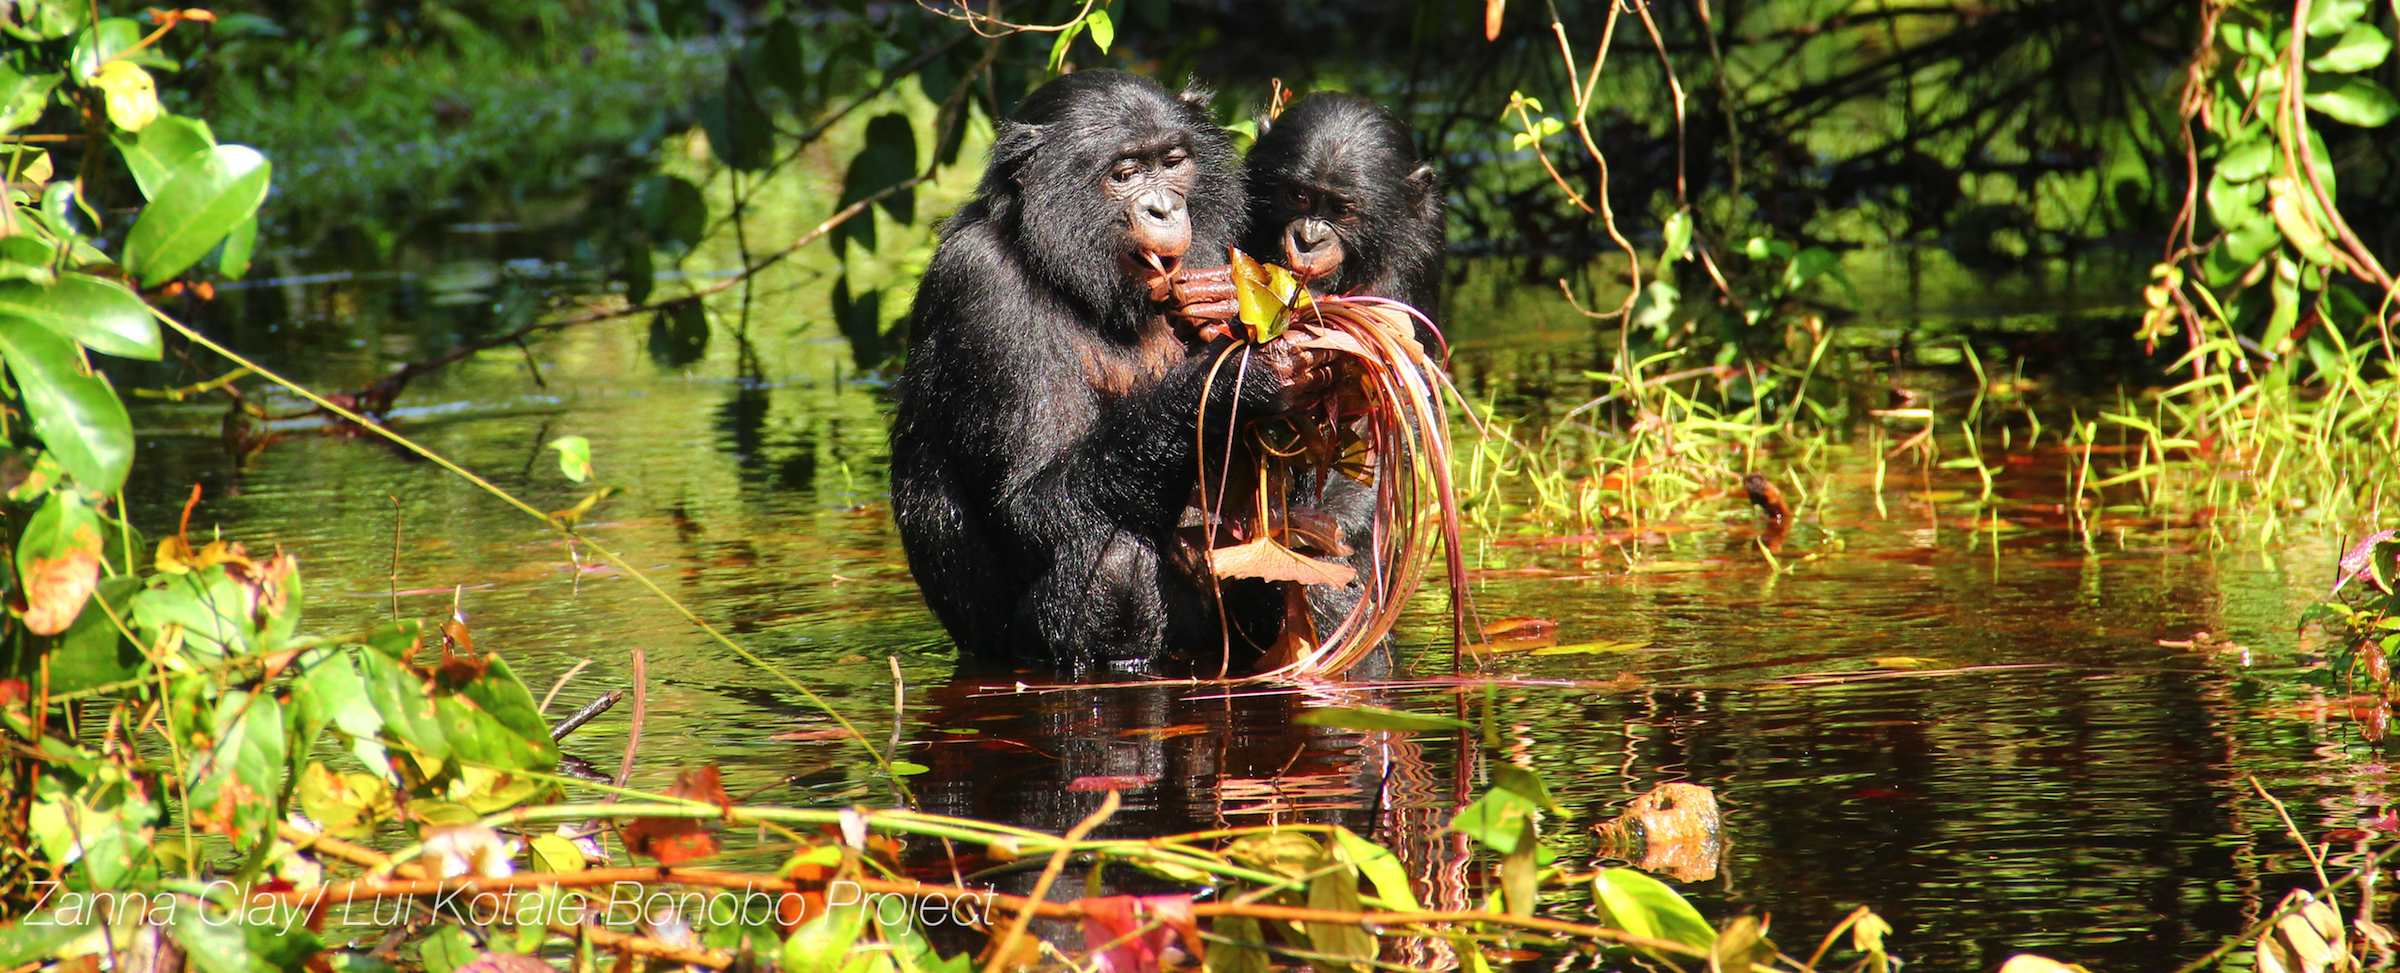 Flexible vocalizations in wild bonobos show similarities to development of human speech